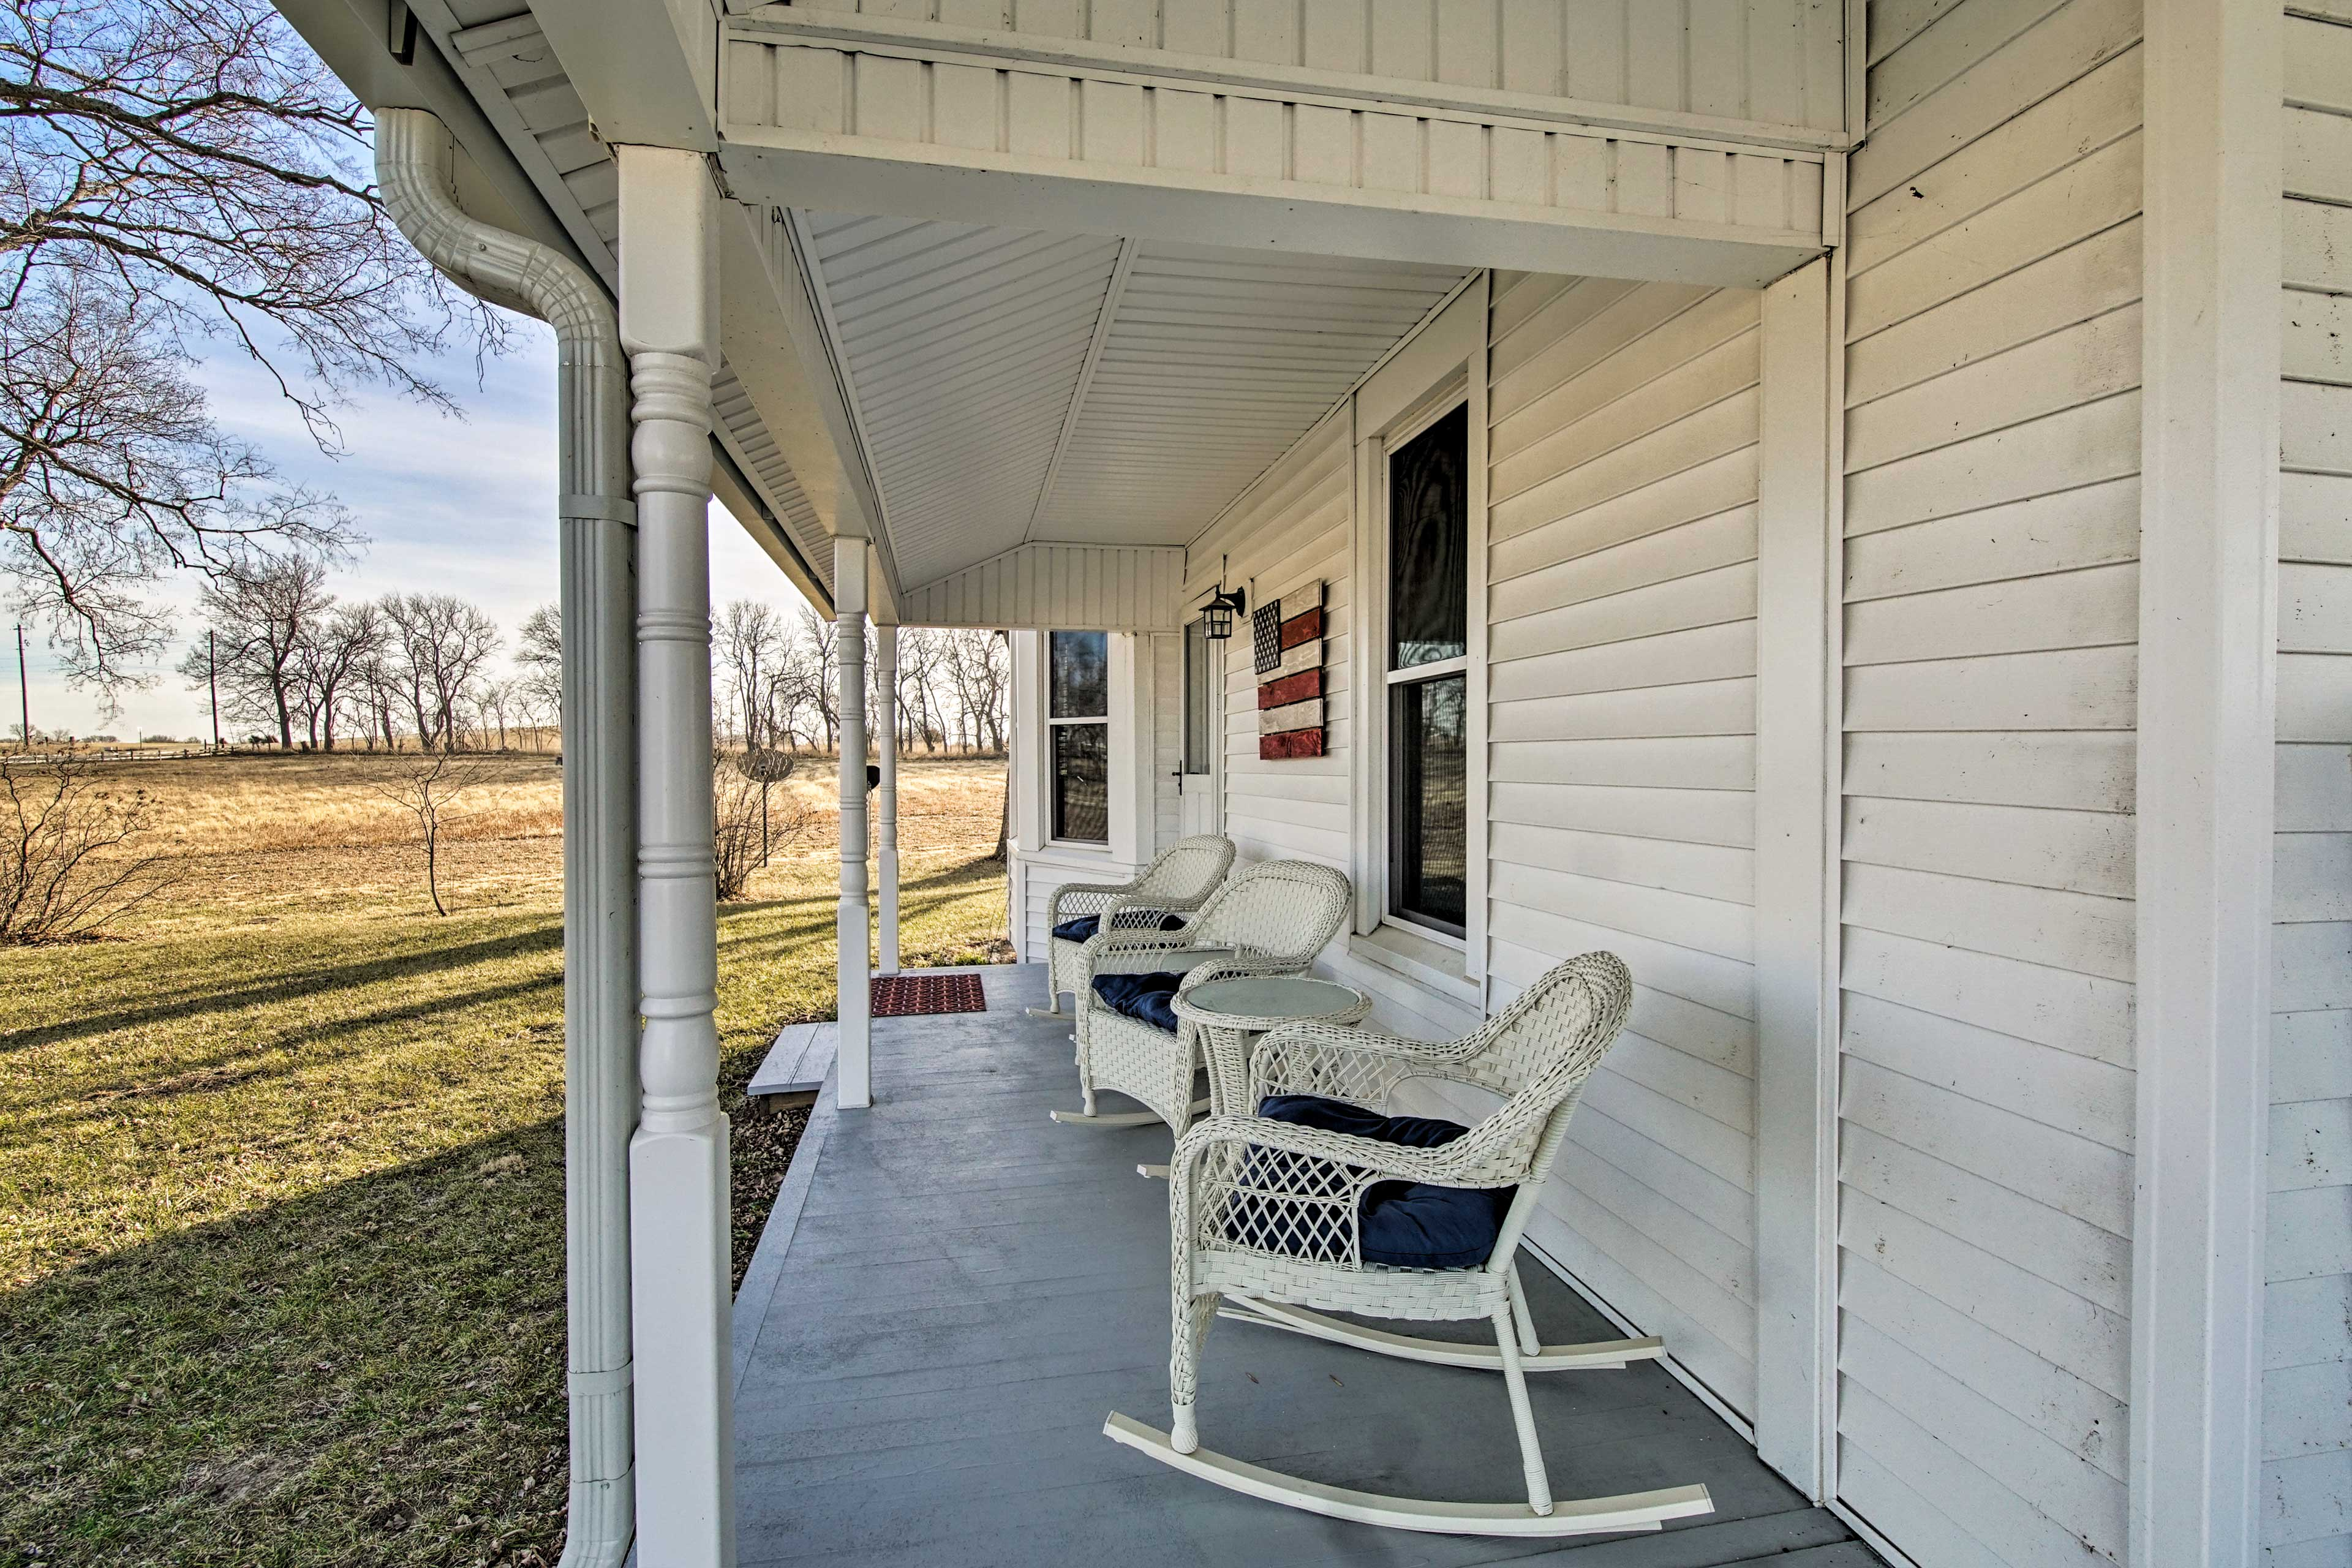 Explore the property to enjoy the serene pasture land.